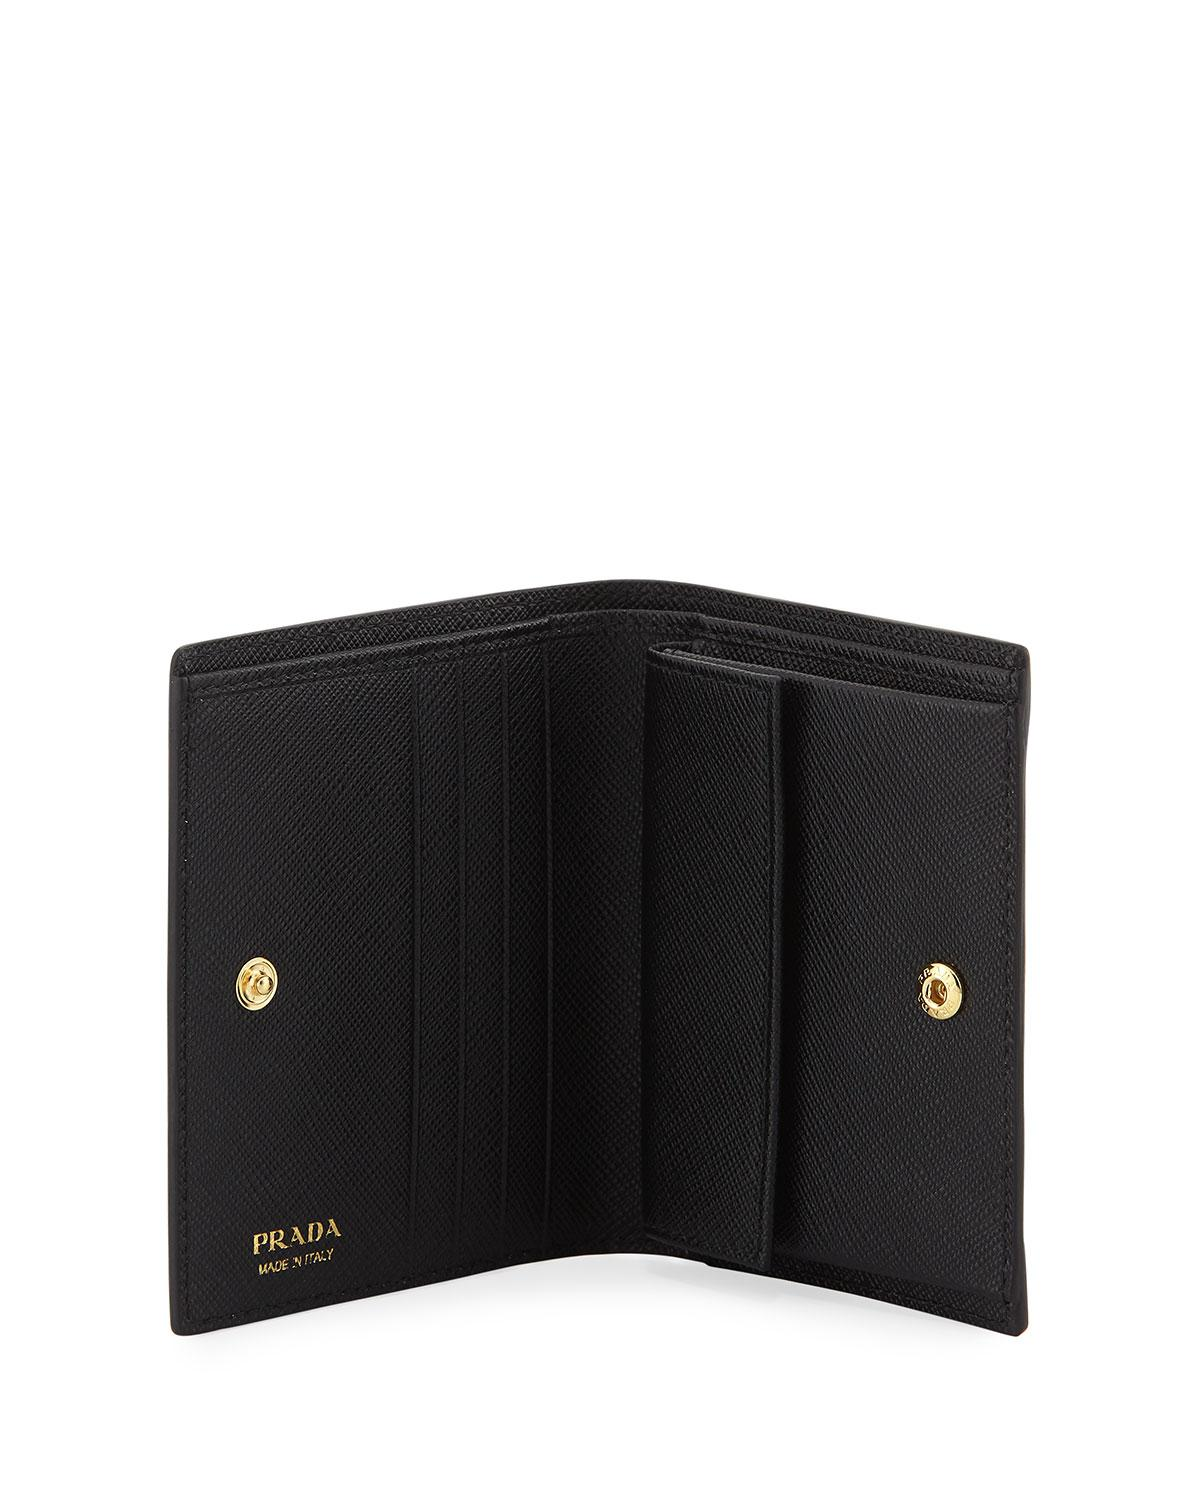 b2fb33b0c502 ... coupon code lyst prada lipstick print leather compact wallet in black  save 2.3809523809523796 af138 38d08